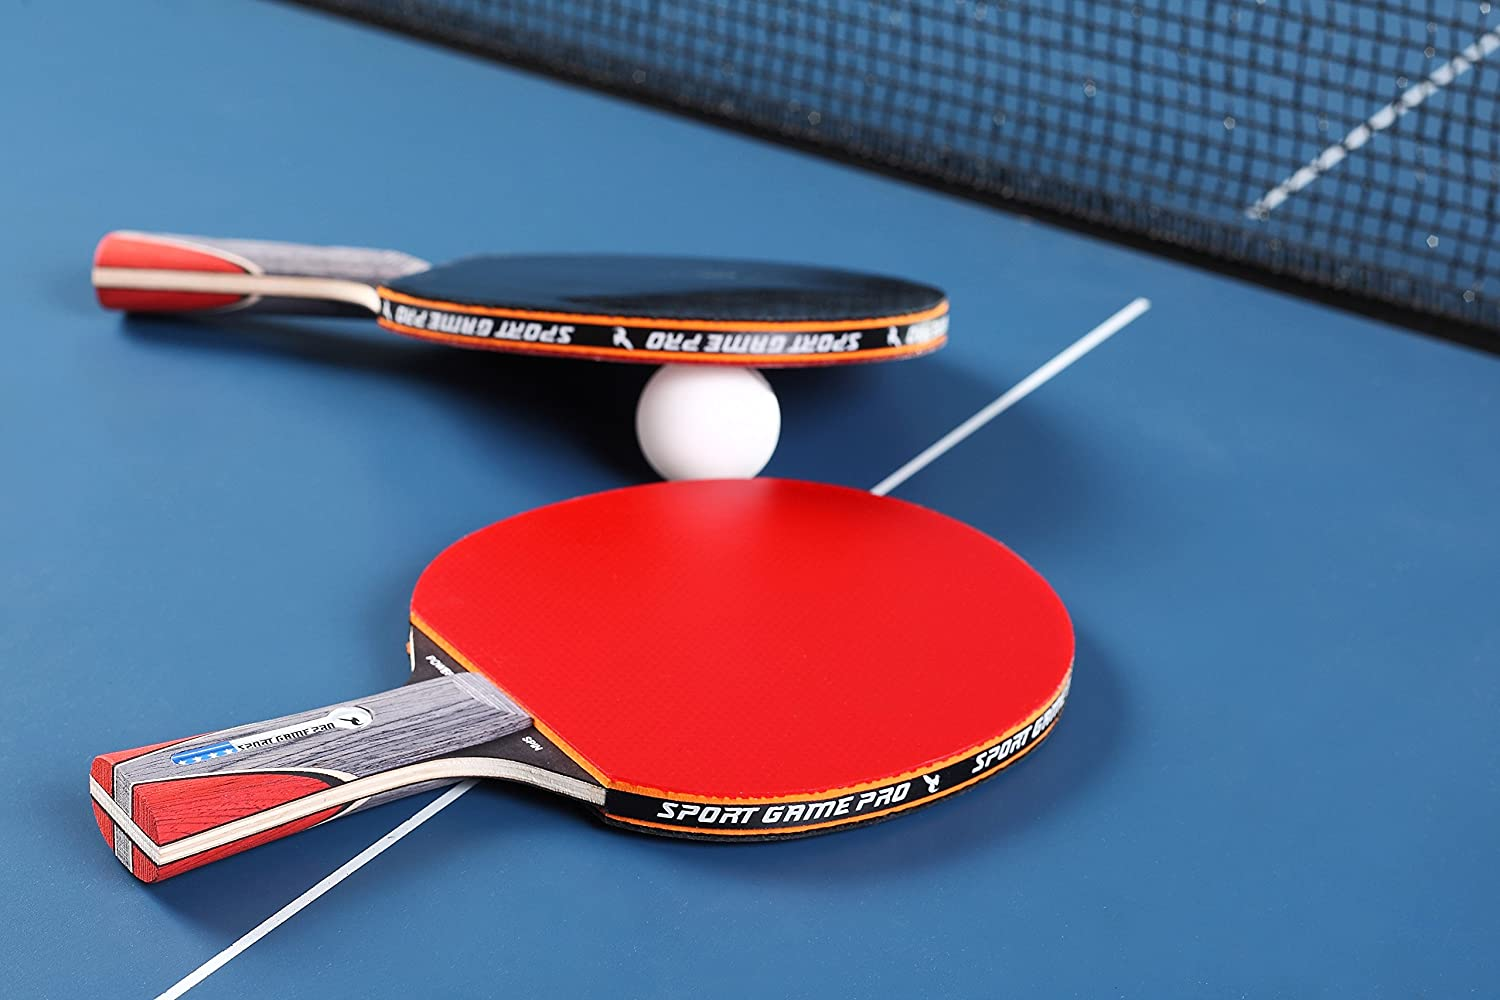 Ping Pong Paddle JT-700 with Killer Spin Case for Free